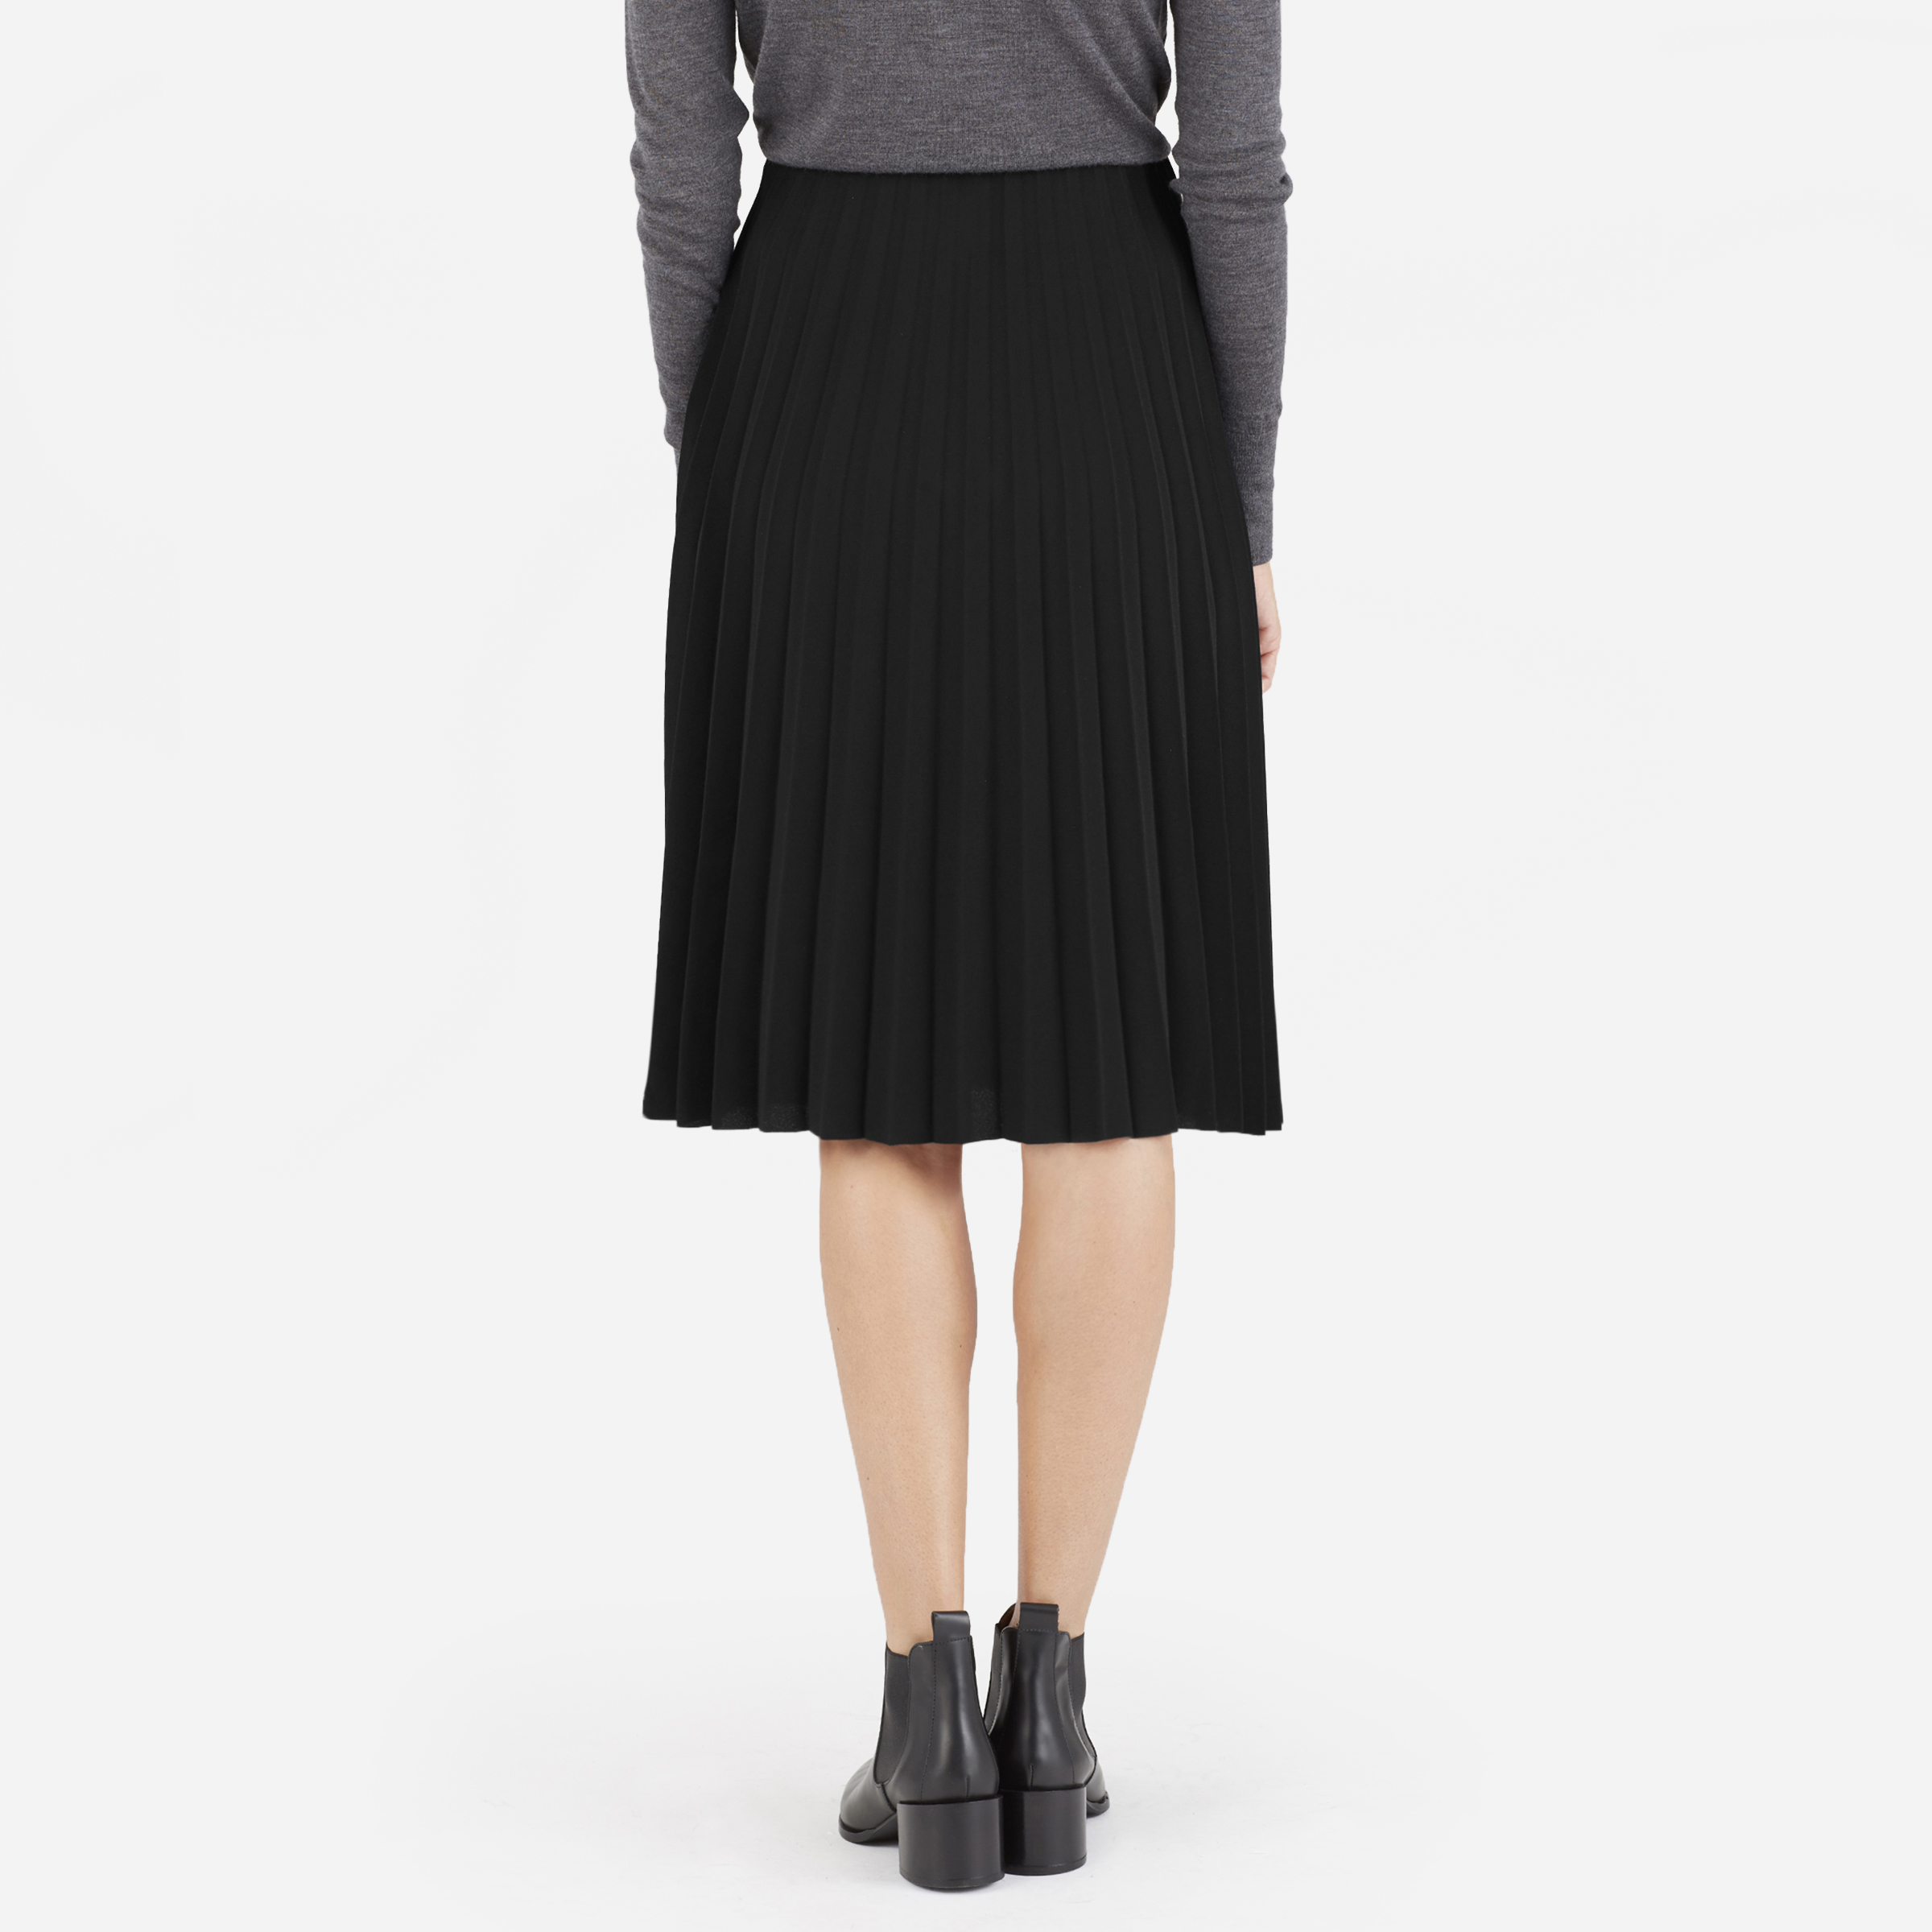 the pleated skirt - $88 dweegqd